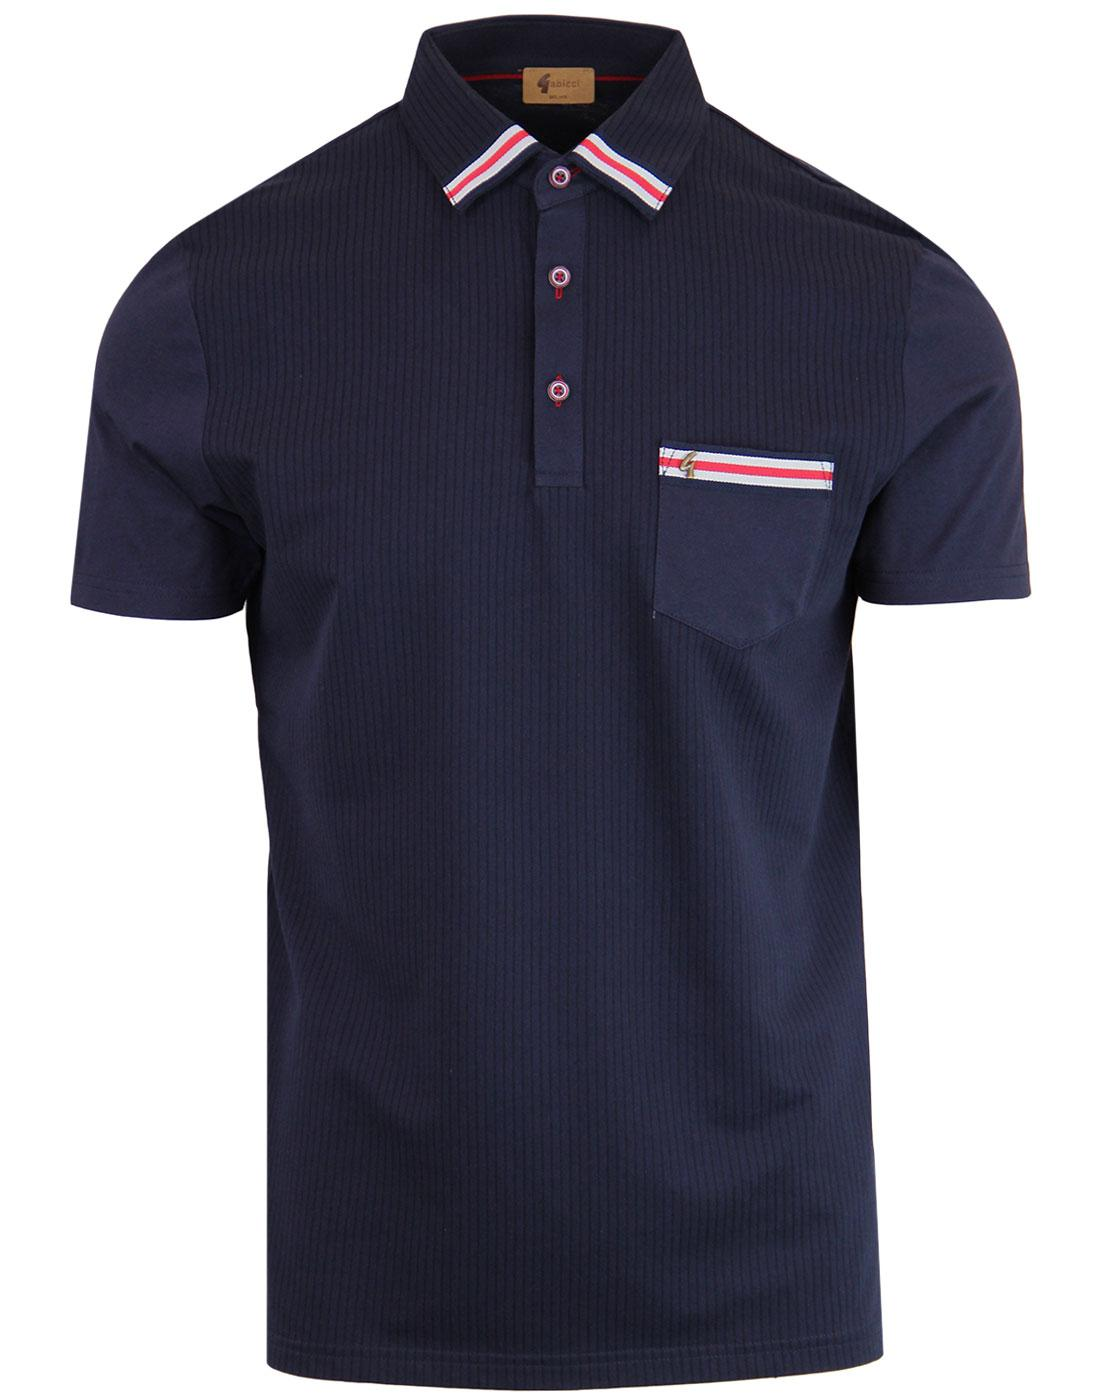 Proton GABICCI VINTAGE Retro Mod Ribbed Polo Top N